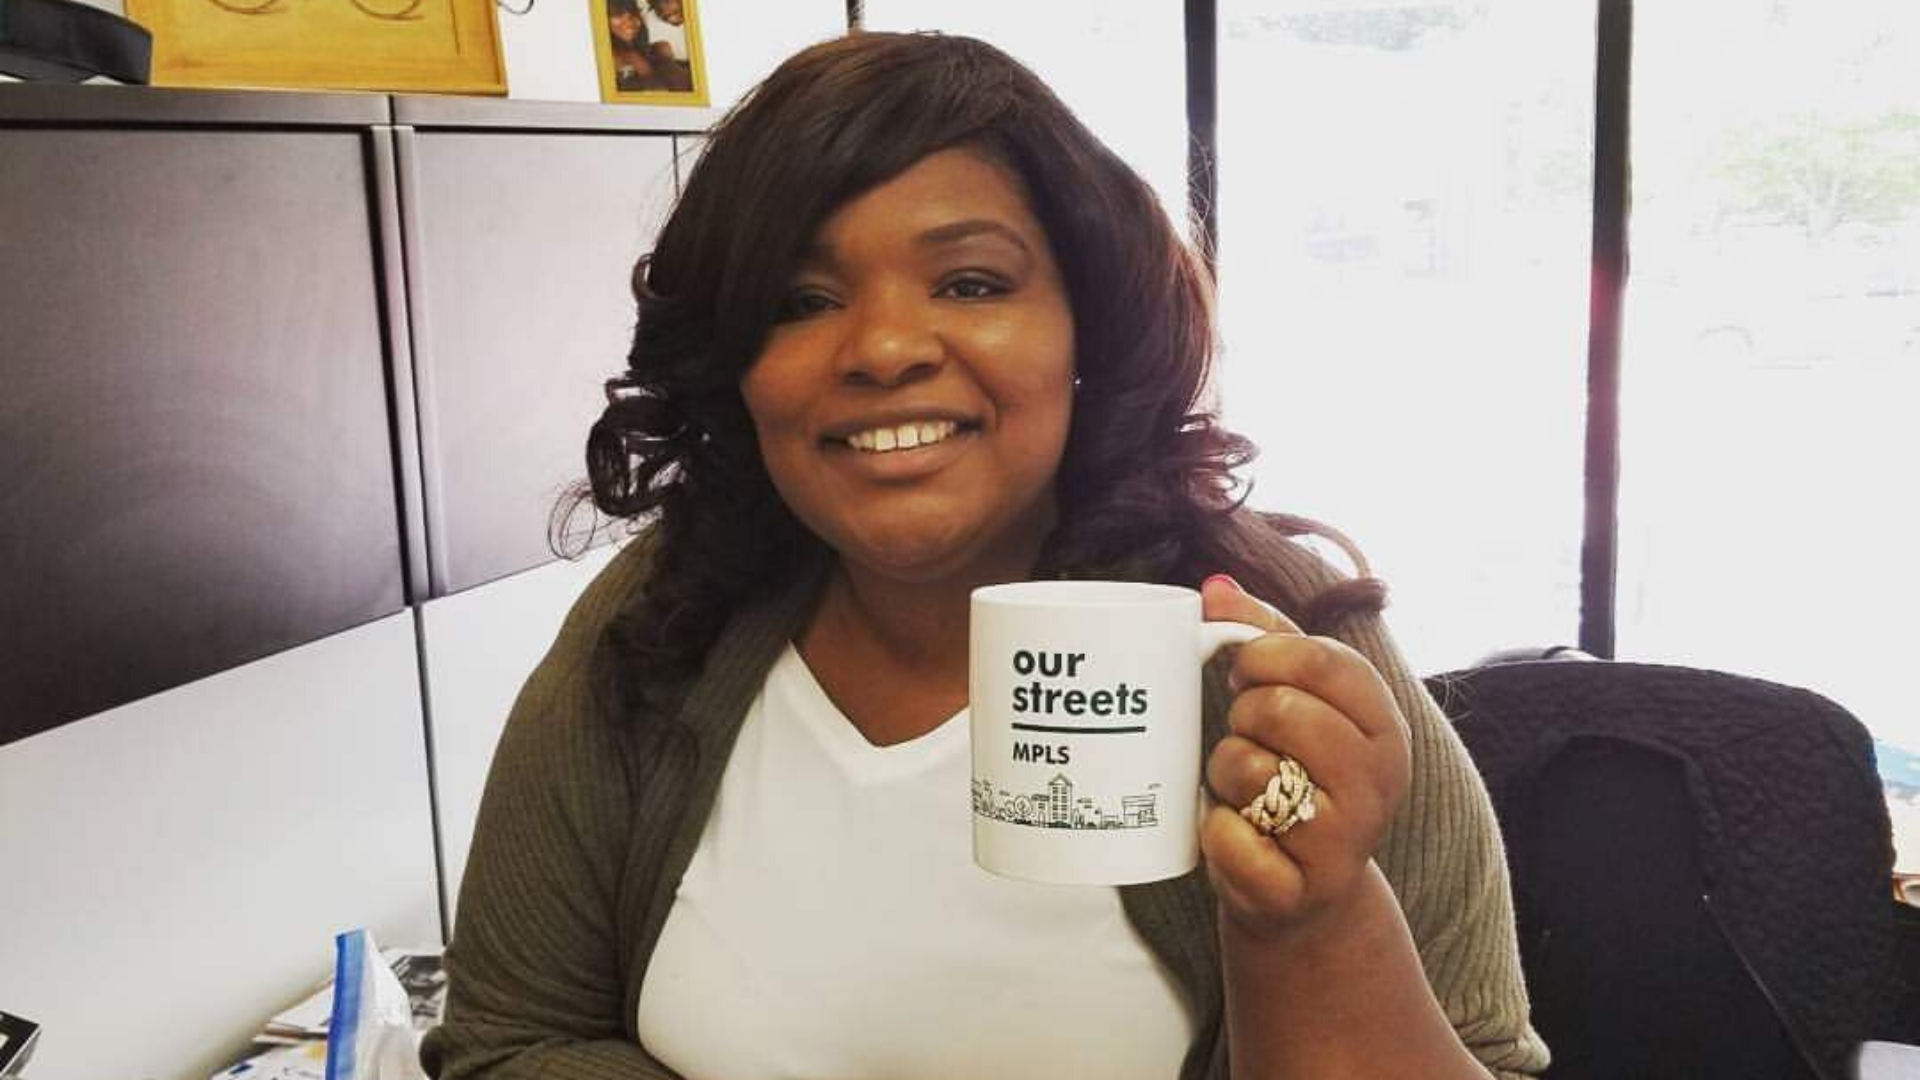 LaTrisha Vetaw at a desk holding an Our Streets Mpls mug